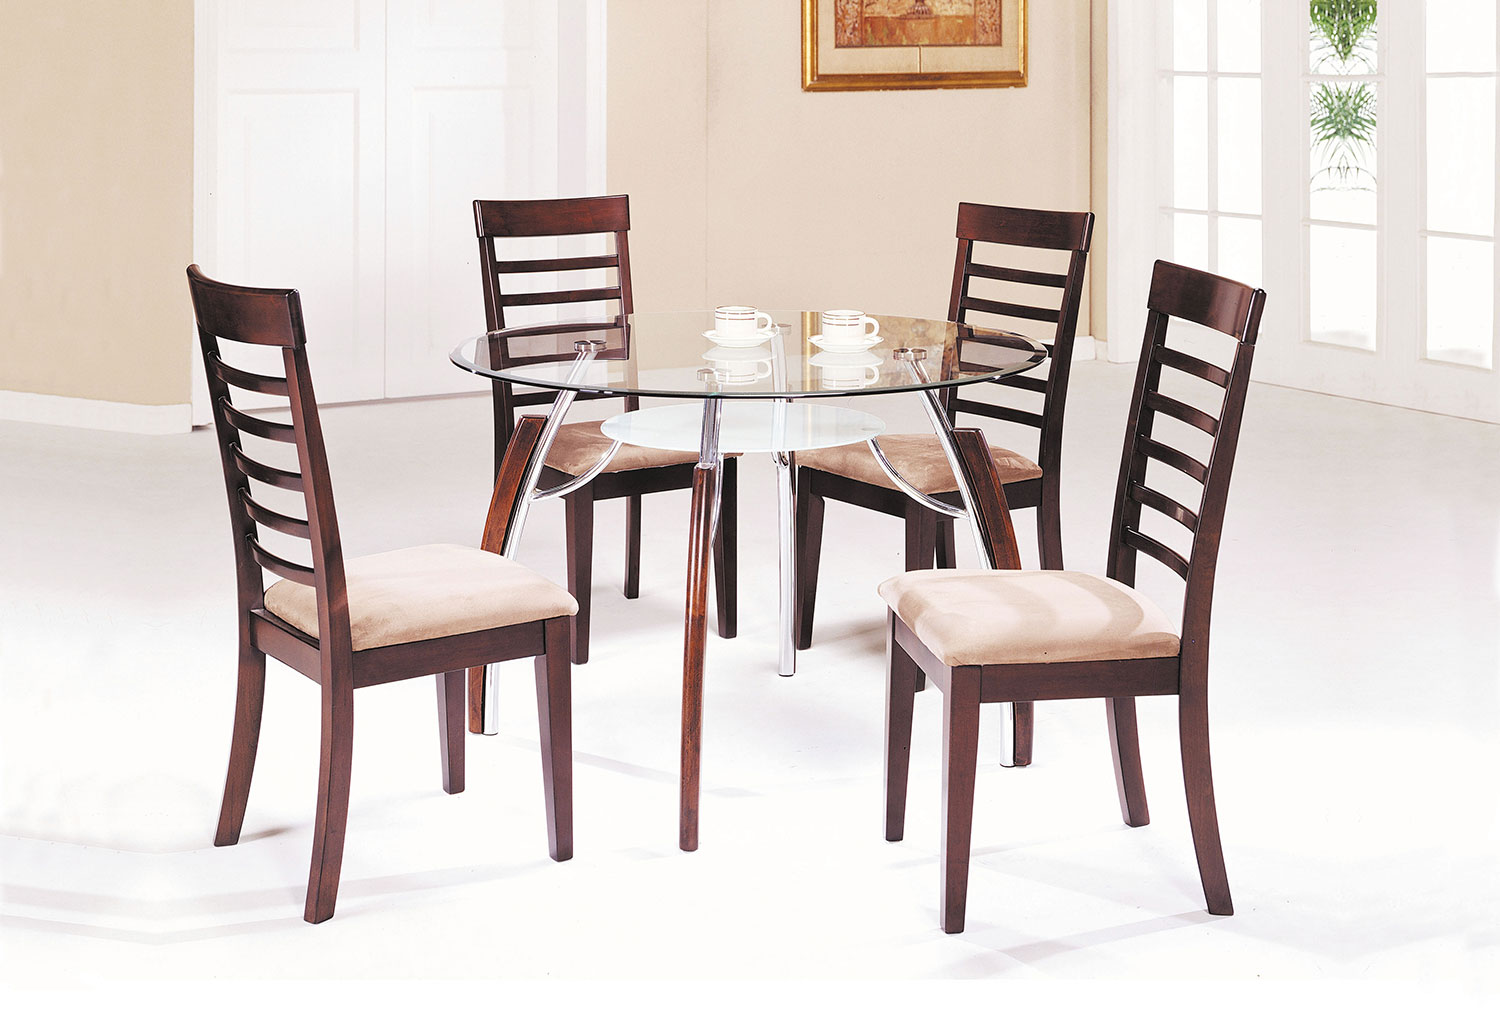 Acme Martini Dining Set - Brown Cherry/Chrome